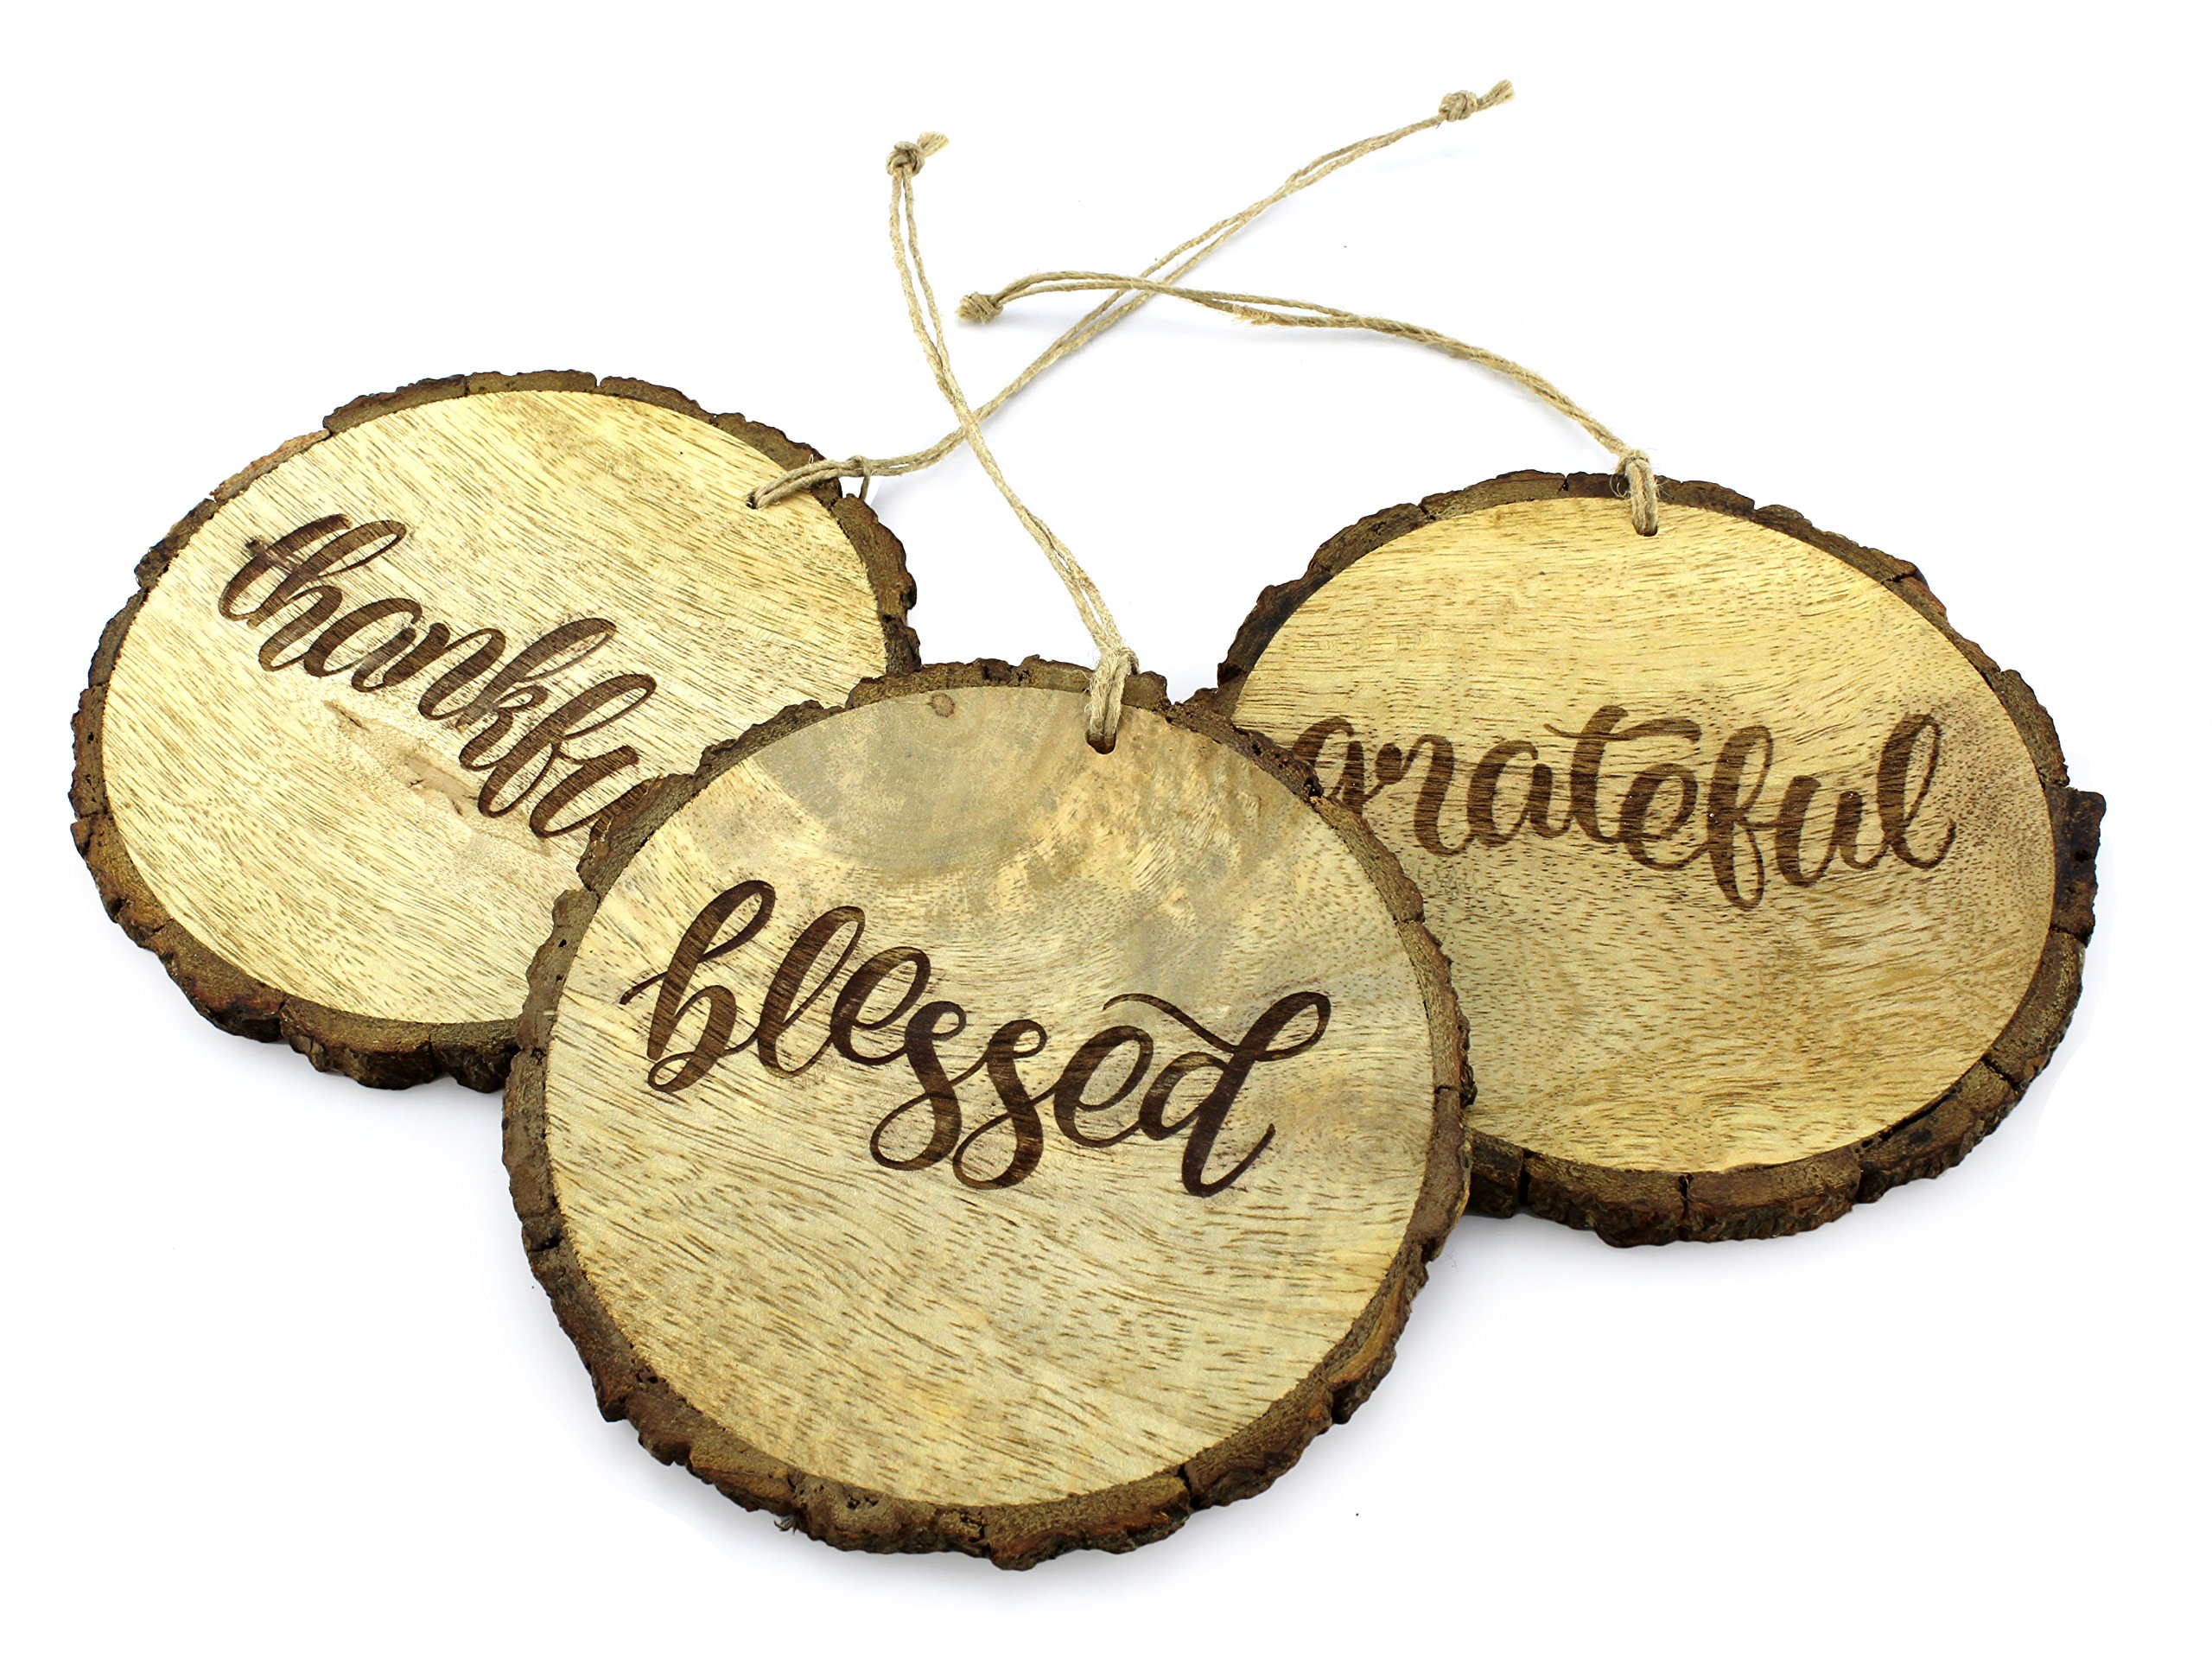 SAM + OLLIE Furnishings Rustic Christmas Ornaments with Thankful,Grateful &Blessed (Set of 3) 4 inch; Round Wooden Farmhouse Decor Country Style Holiday Decorations